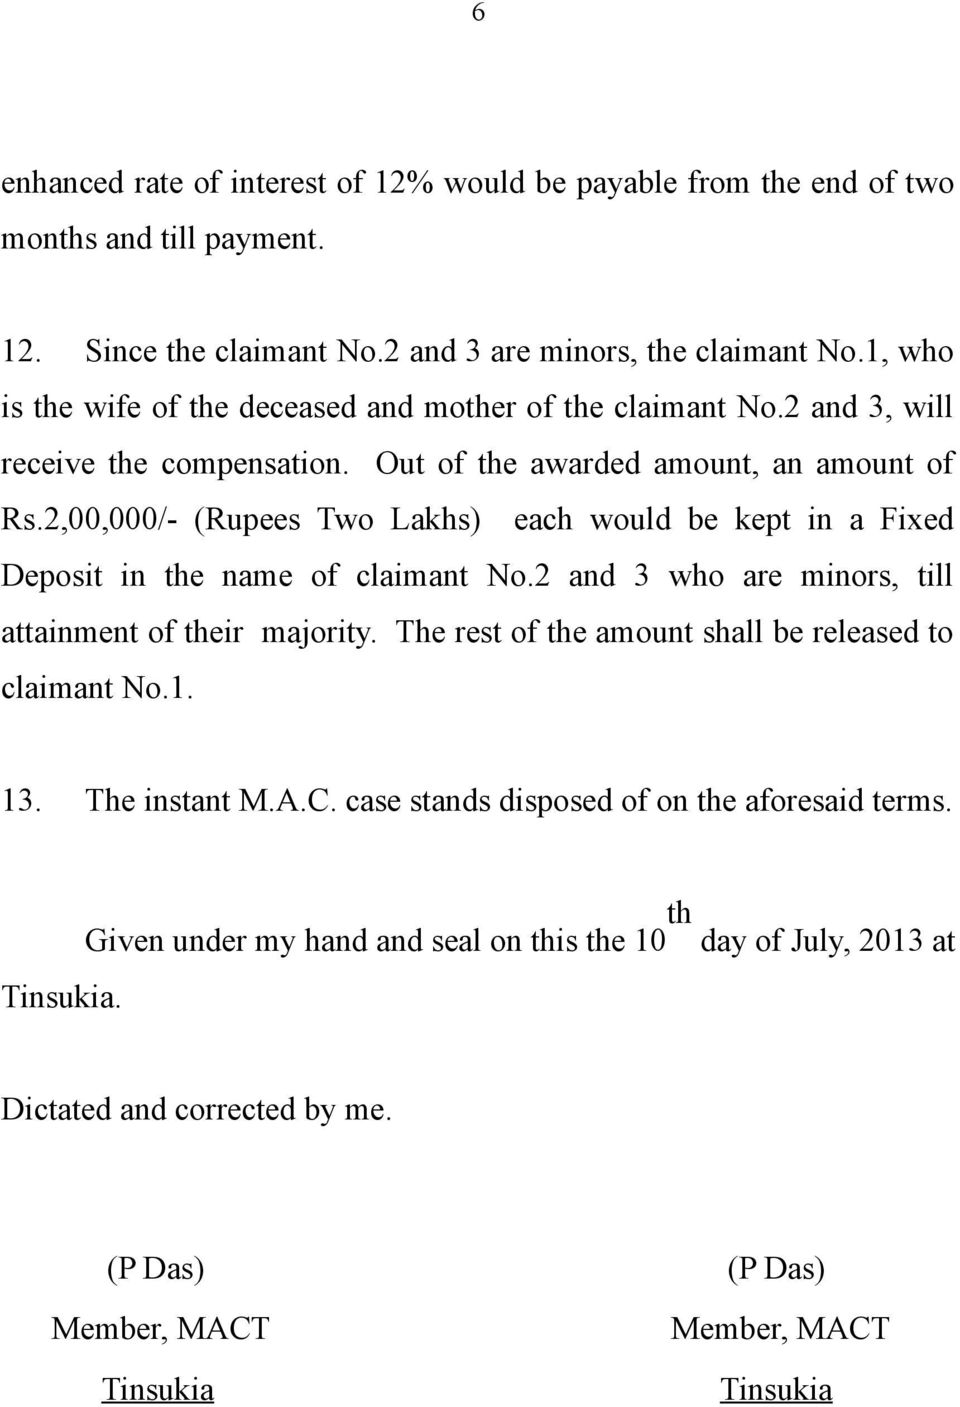 2,00,000/- (Rupees Two Lakhs) each would be kept in a Fixed Deposit in the name of claimant No.2 and 3 who are minors, till attainment of their majority.